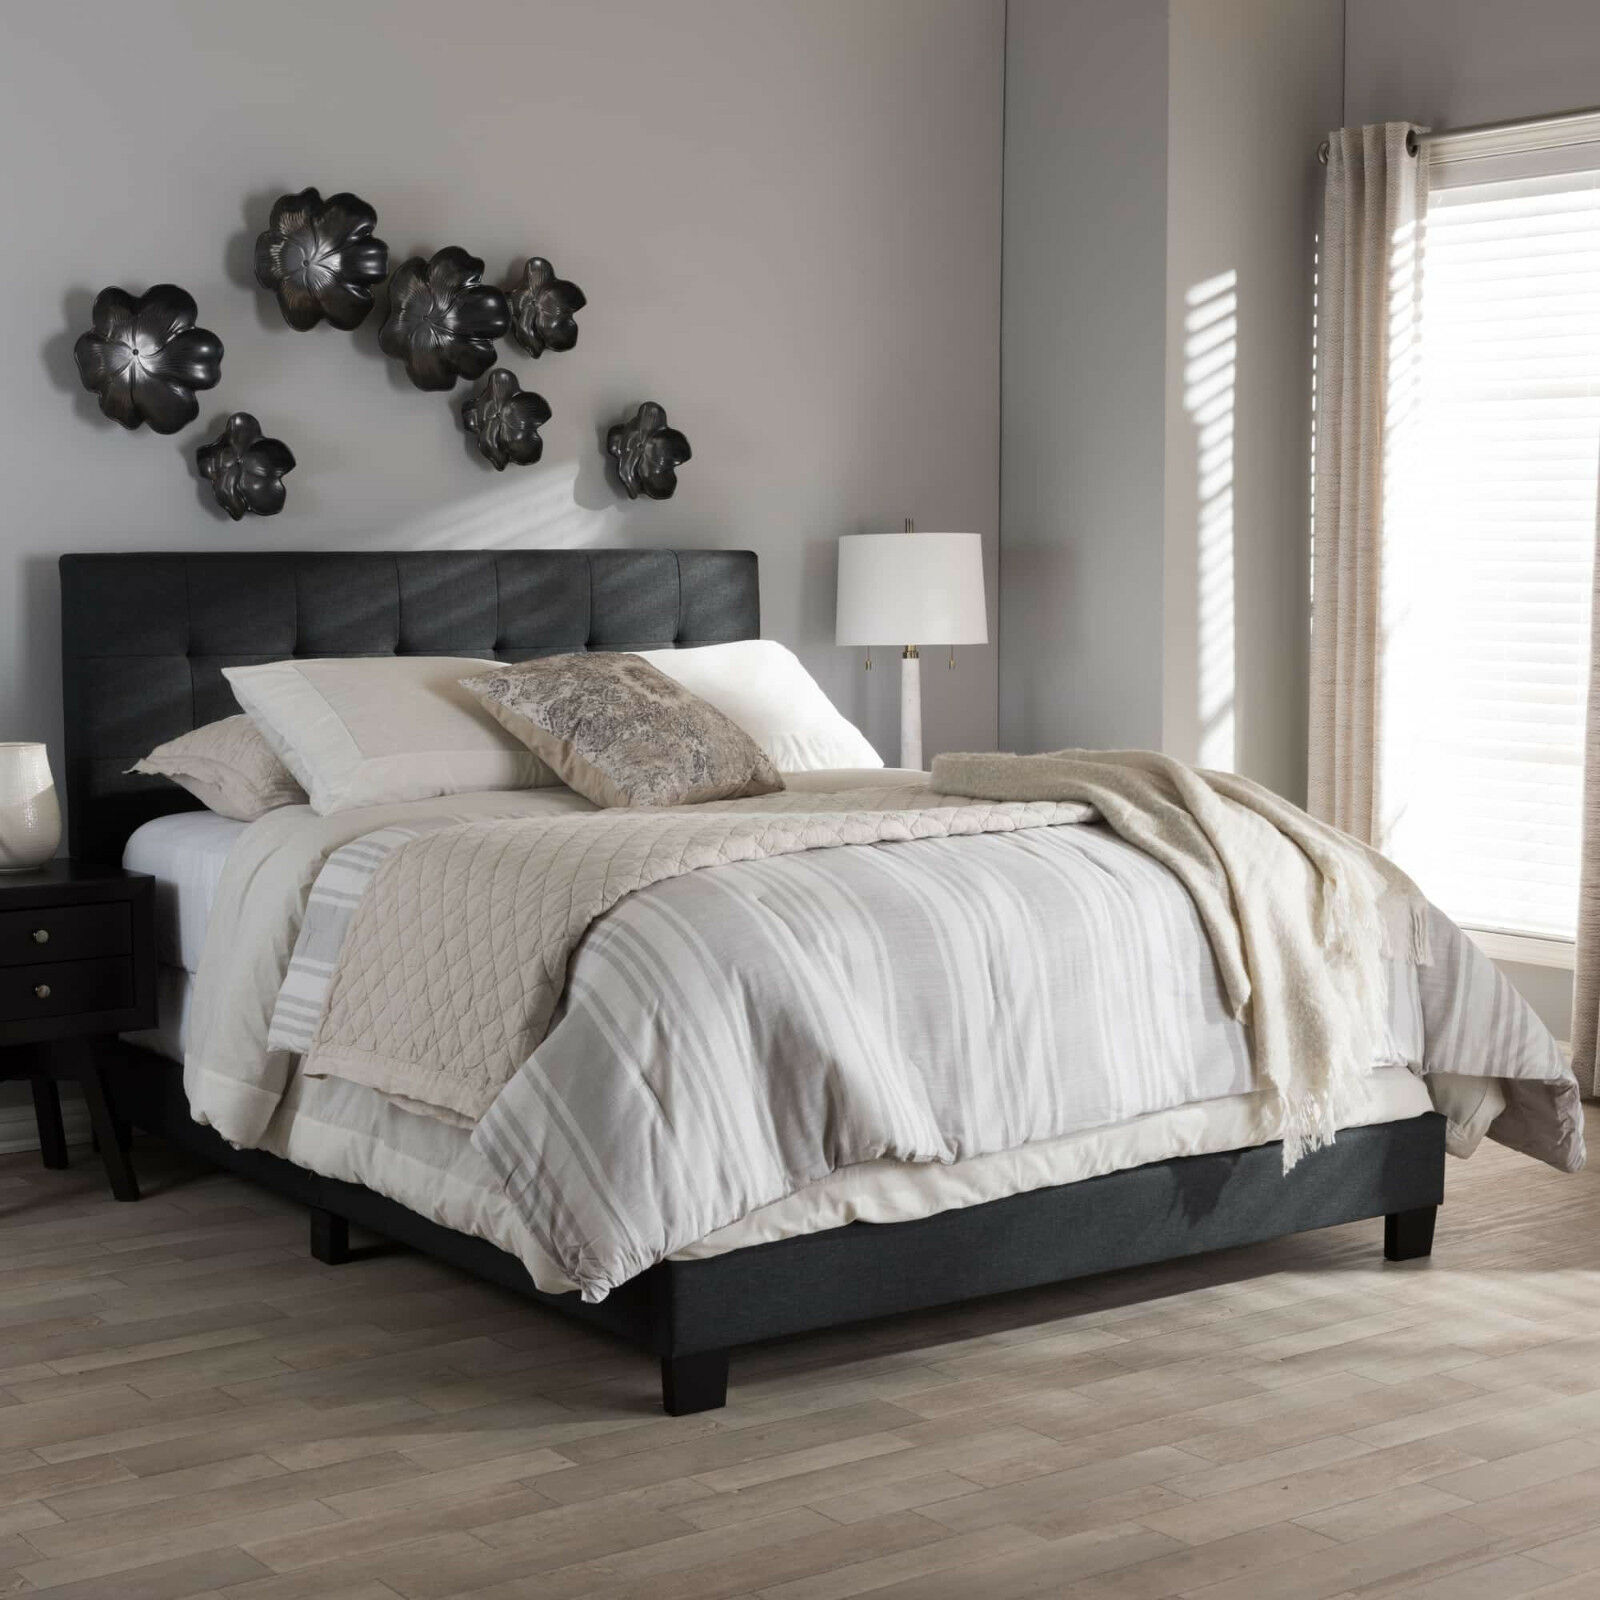 Queen Size Bed Frame Platform Bedroom Charcoal Gray Upholstered Stable Headboard